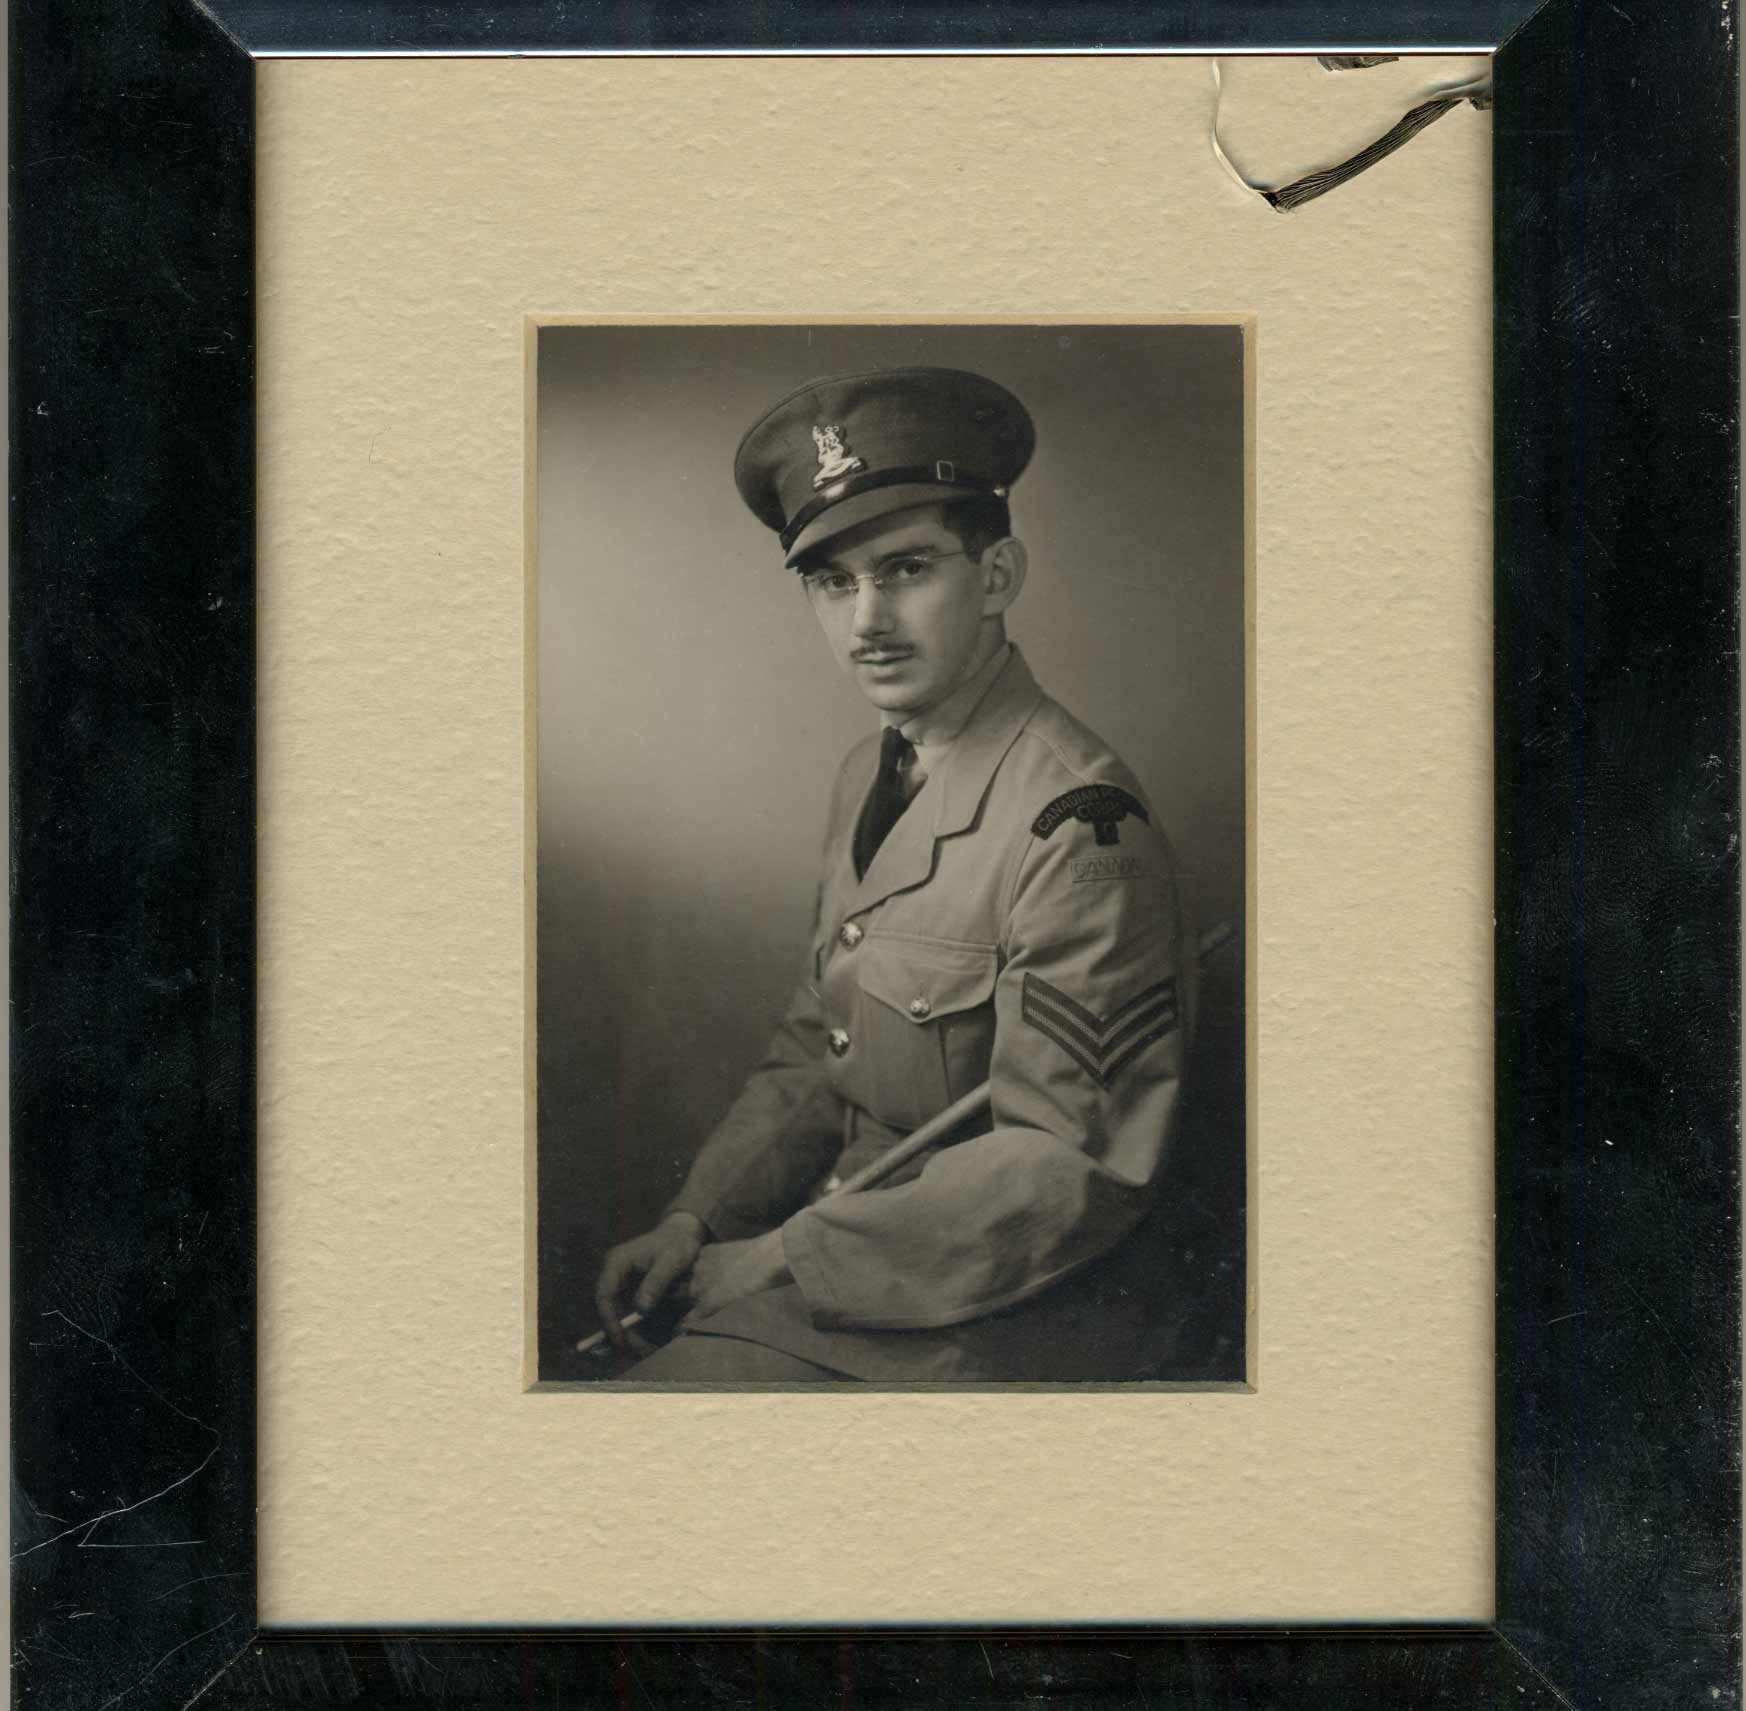 Portrait de Sydney Howard Selig en uniforme en 1945.